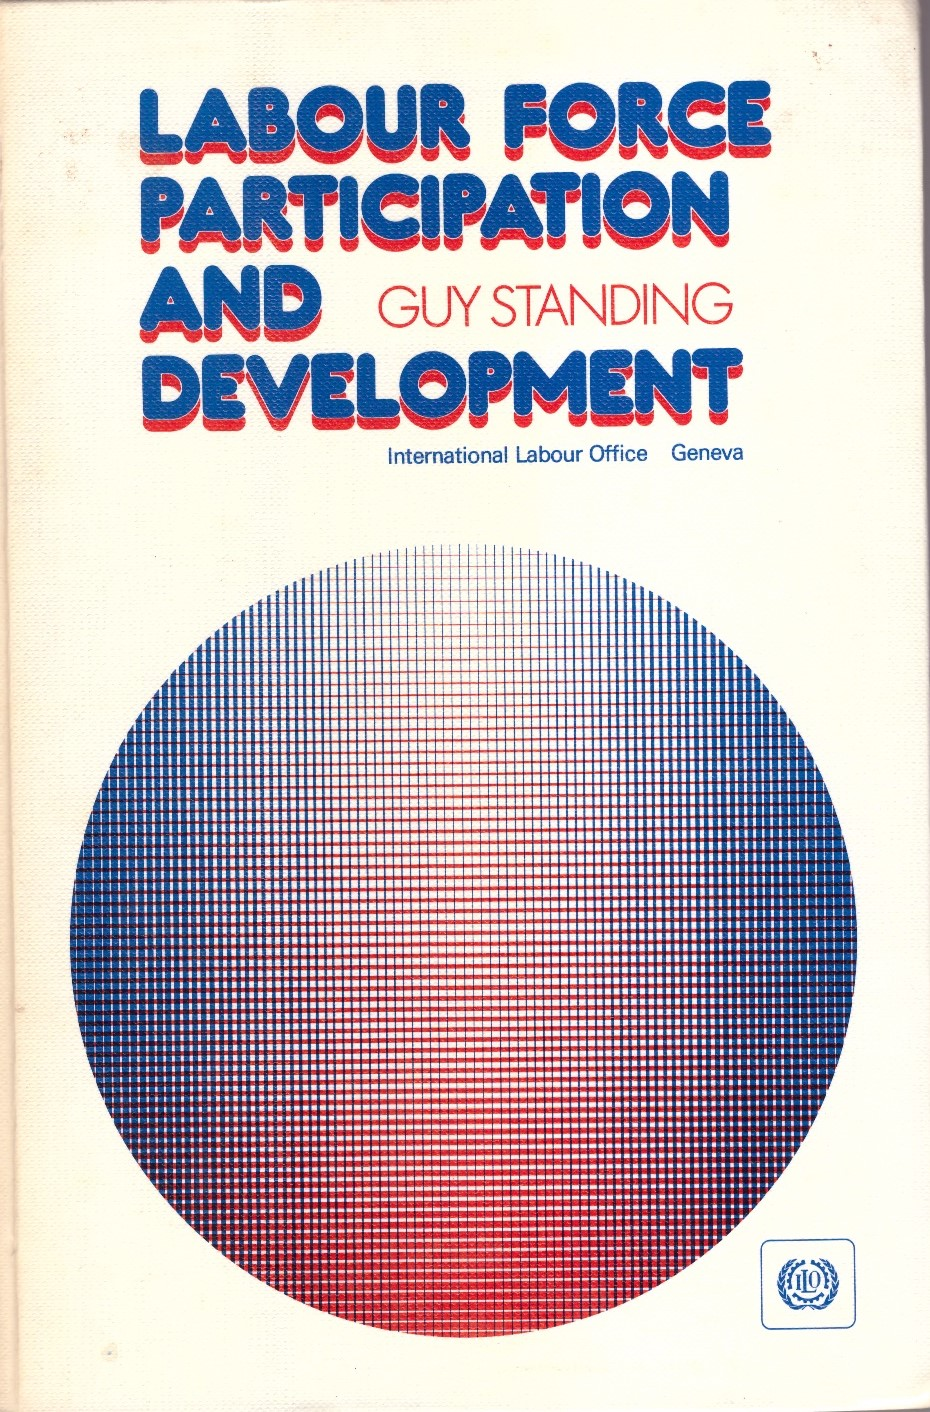 Labour Force Participation and Development  (Geneva: ILO, 1978; 2nd edn., 1981, reprinted 1982).    Details